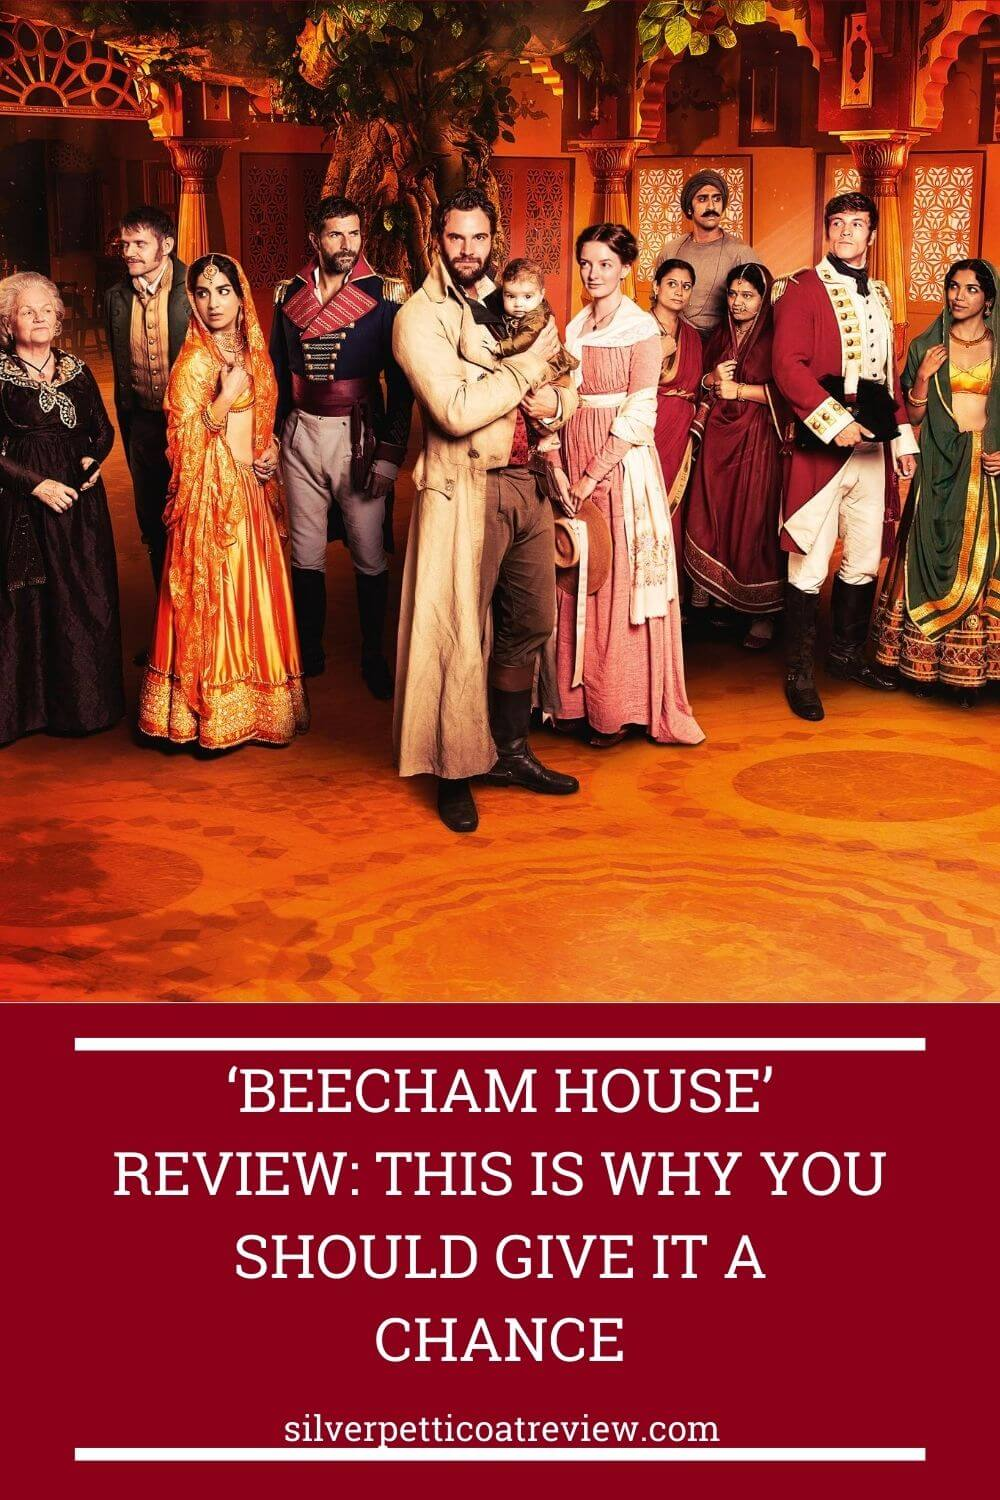 'Beecham House' Review: This is Why You Should Give It a Chance: Pinterest image